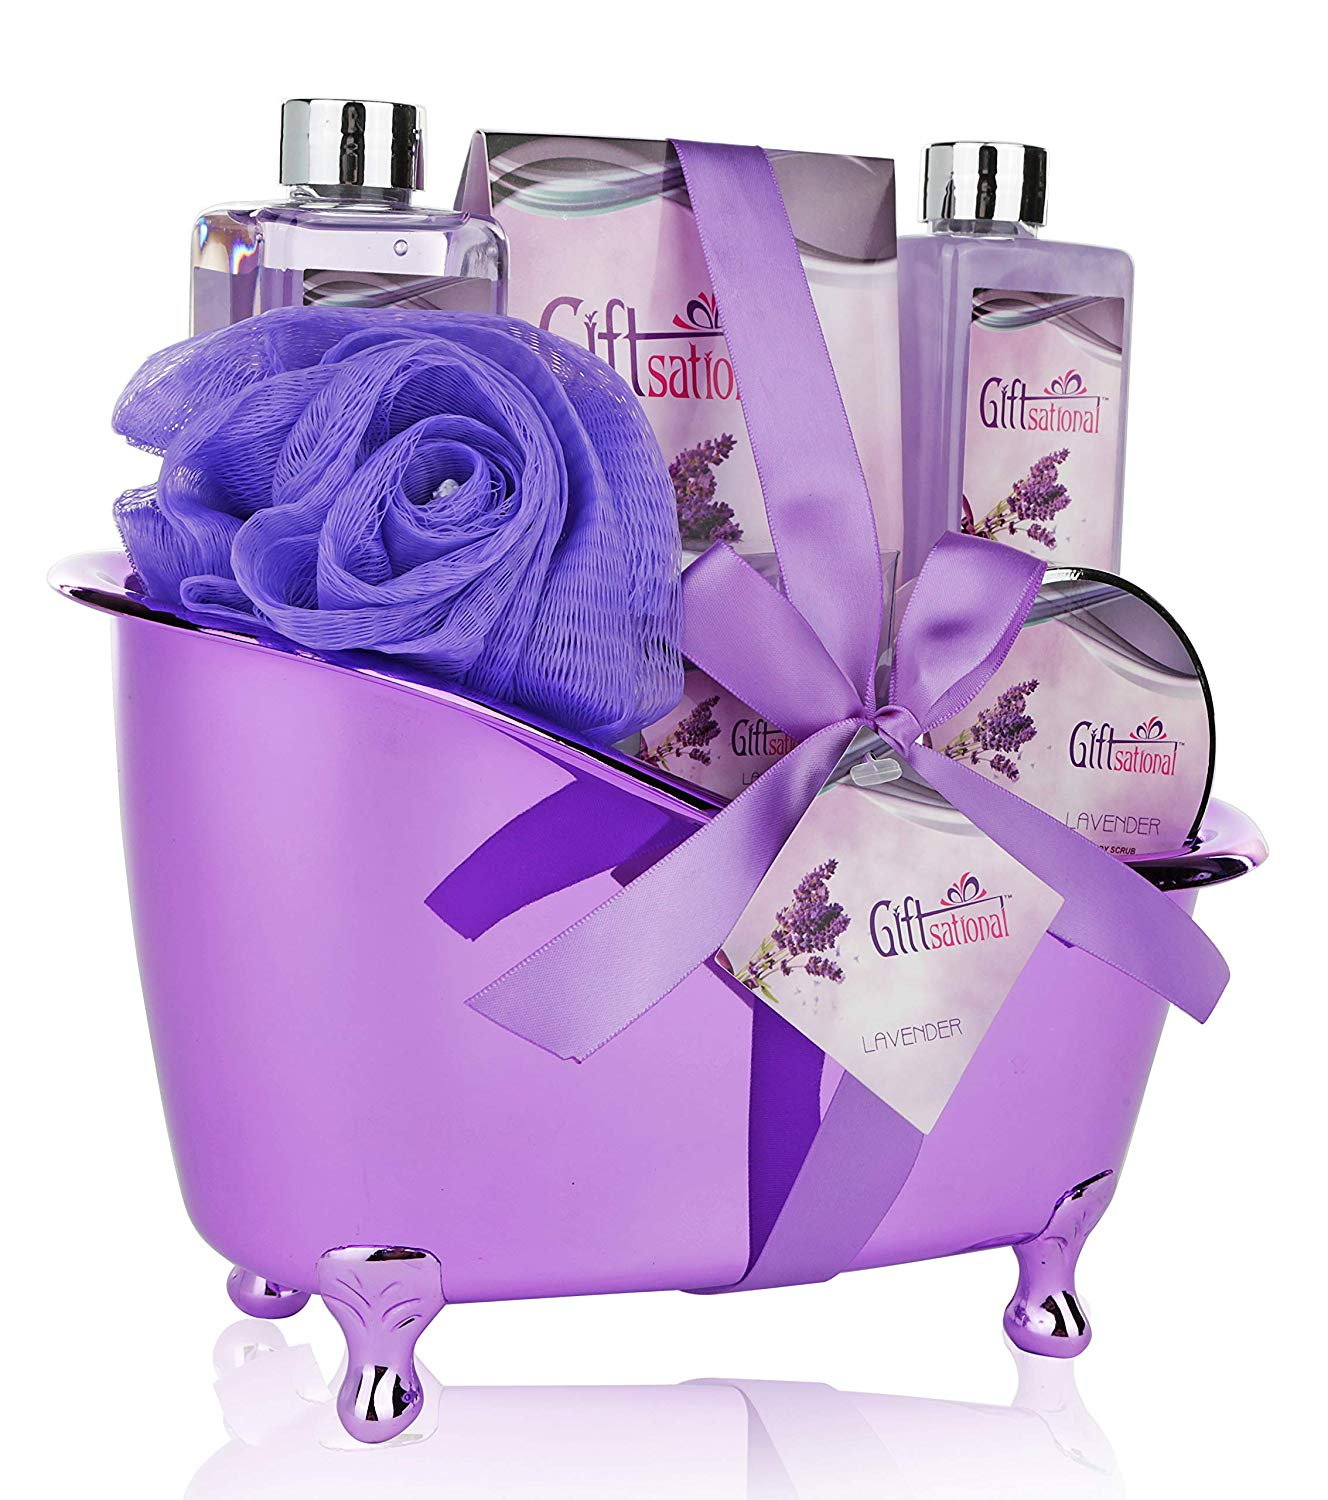 One Year Anniversary Gifts for Girlfriend Spa Gift Basket